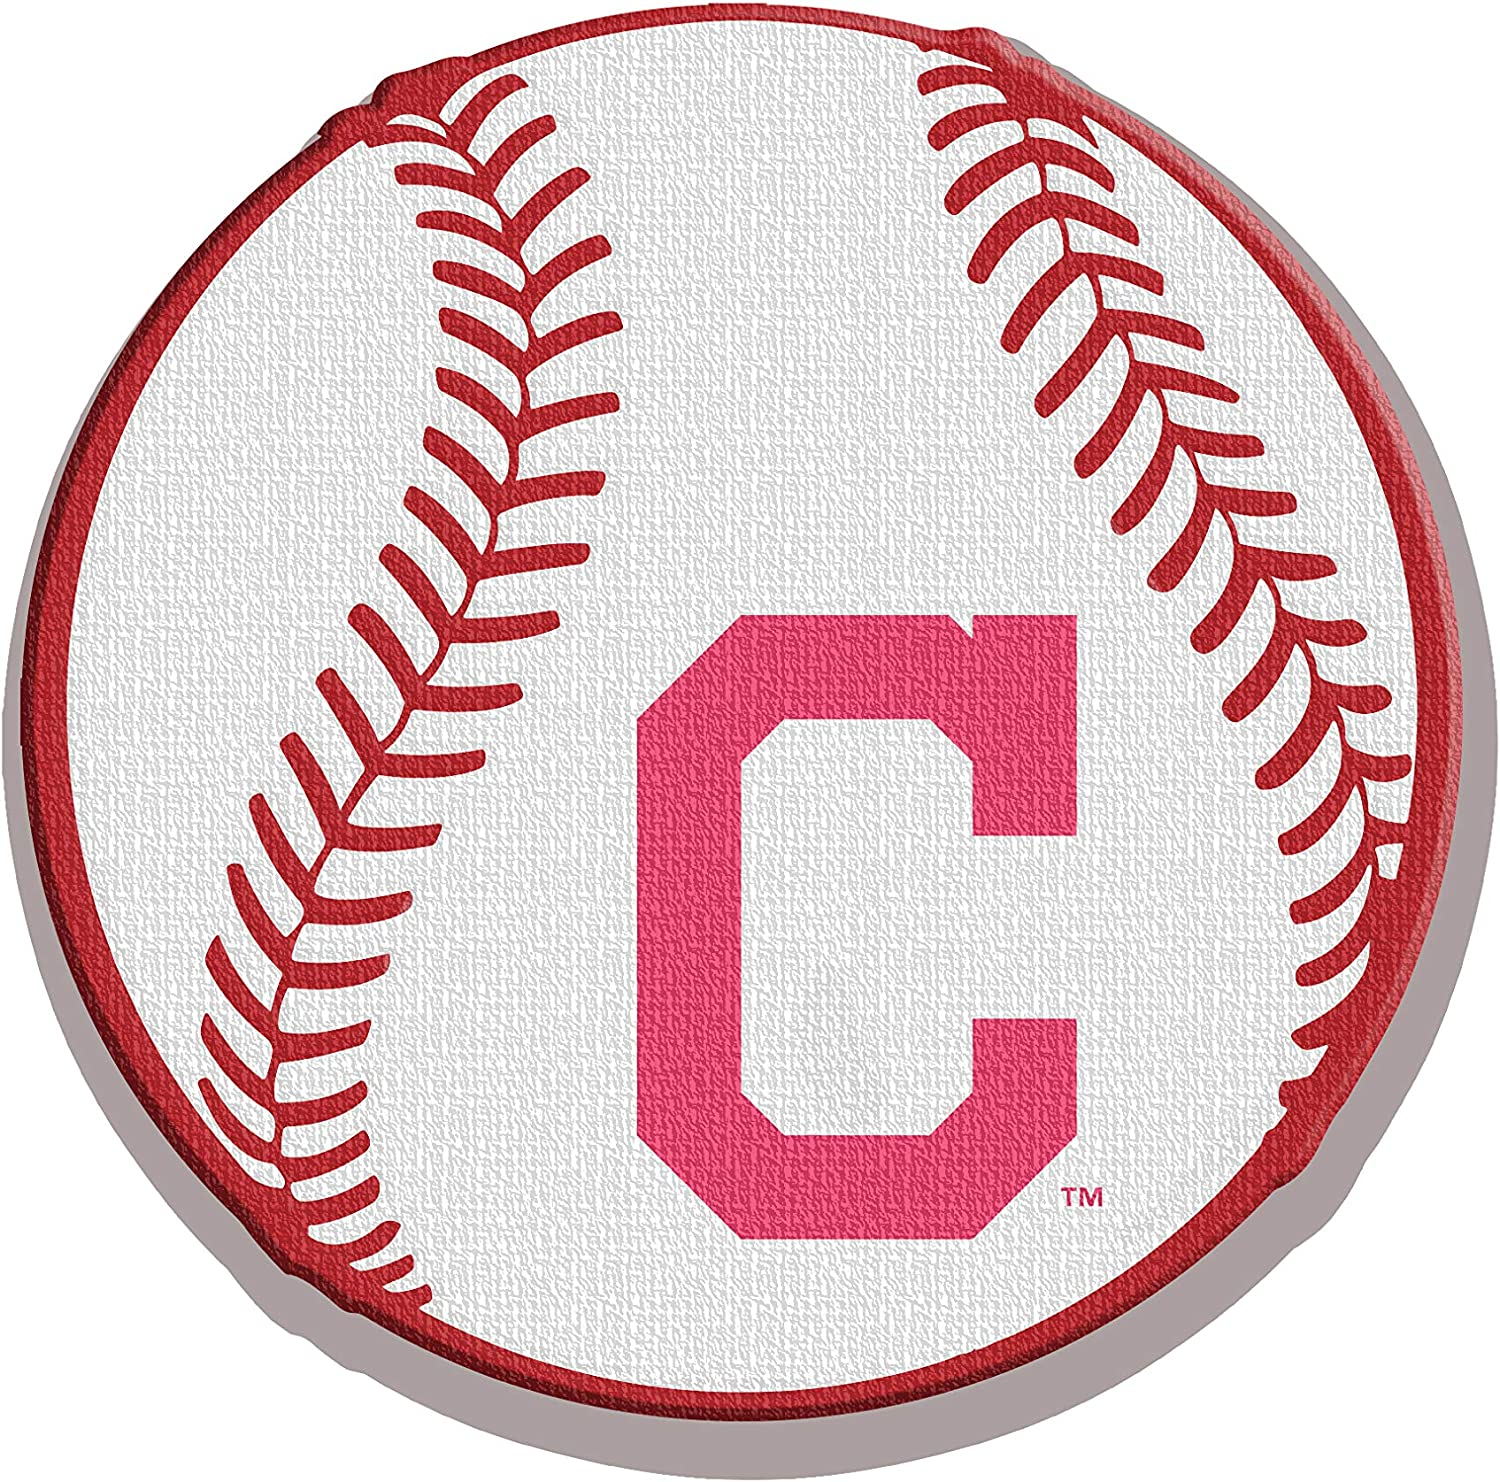 The Memory Company, MLB Cleveland Indians LED Neon Light Sign | Sports Team Lamp Decor | for Office Desk, Man Cave Bar, or Bedroom Night Light